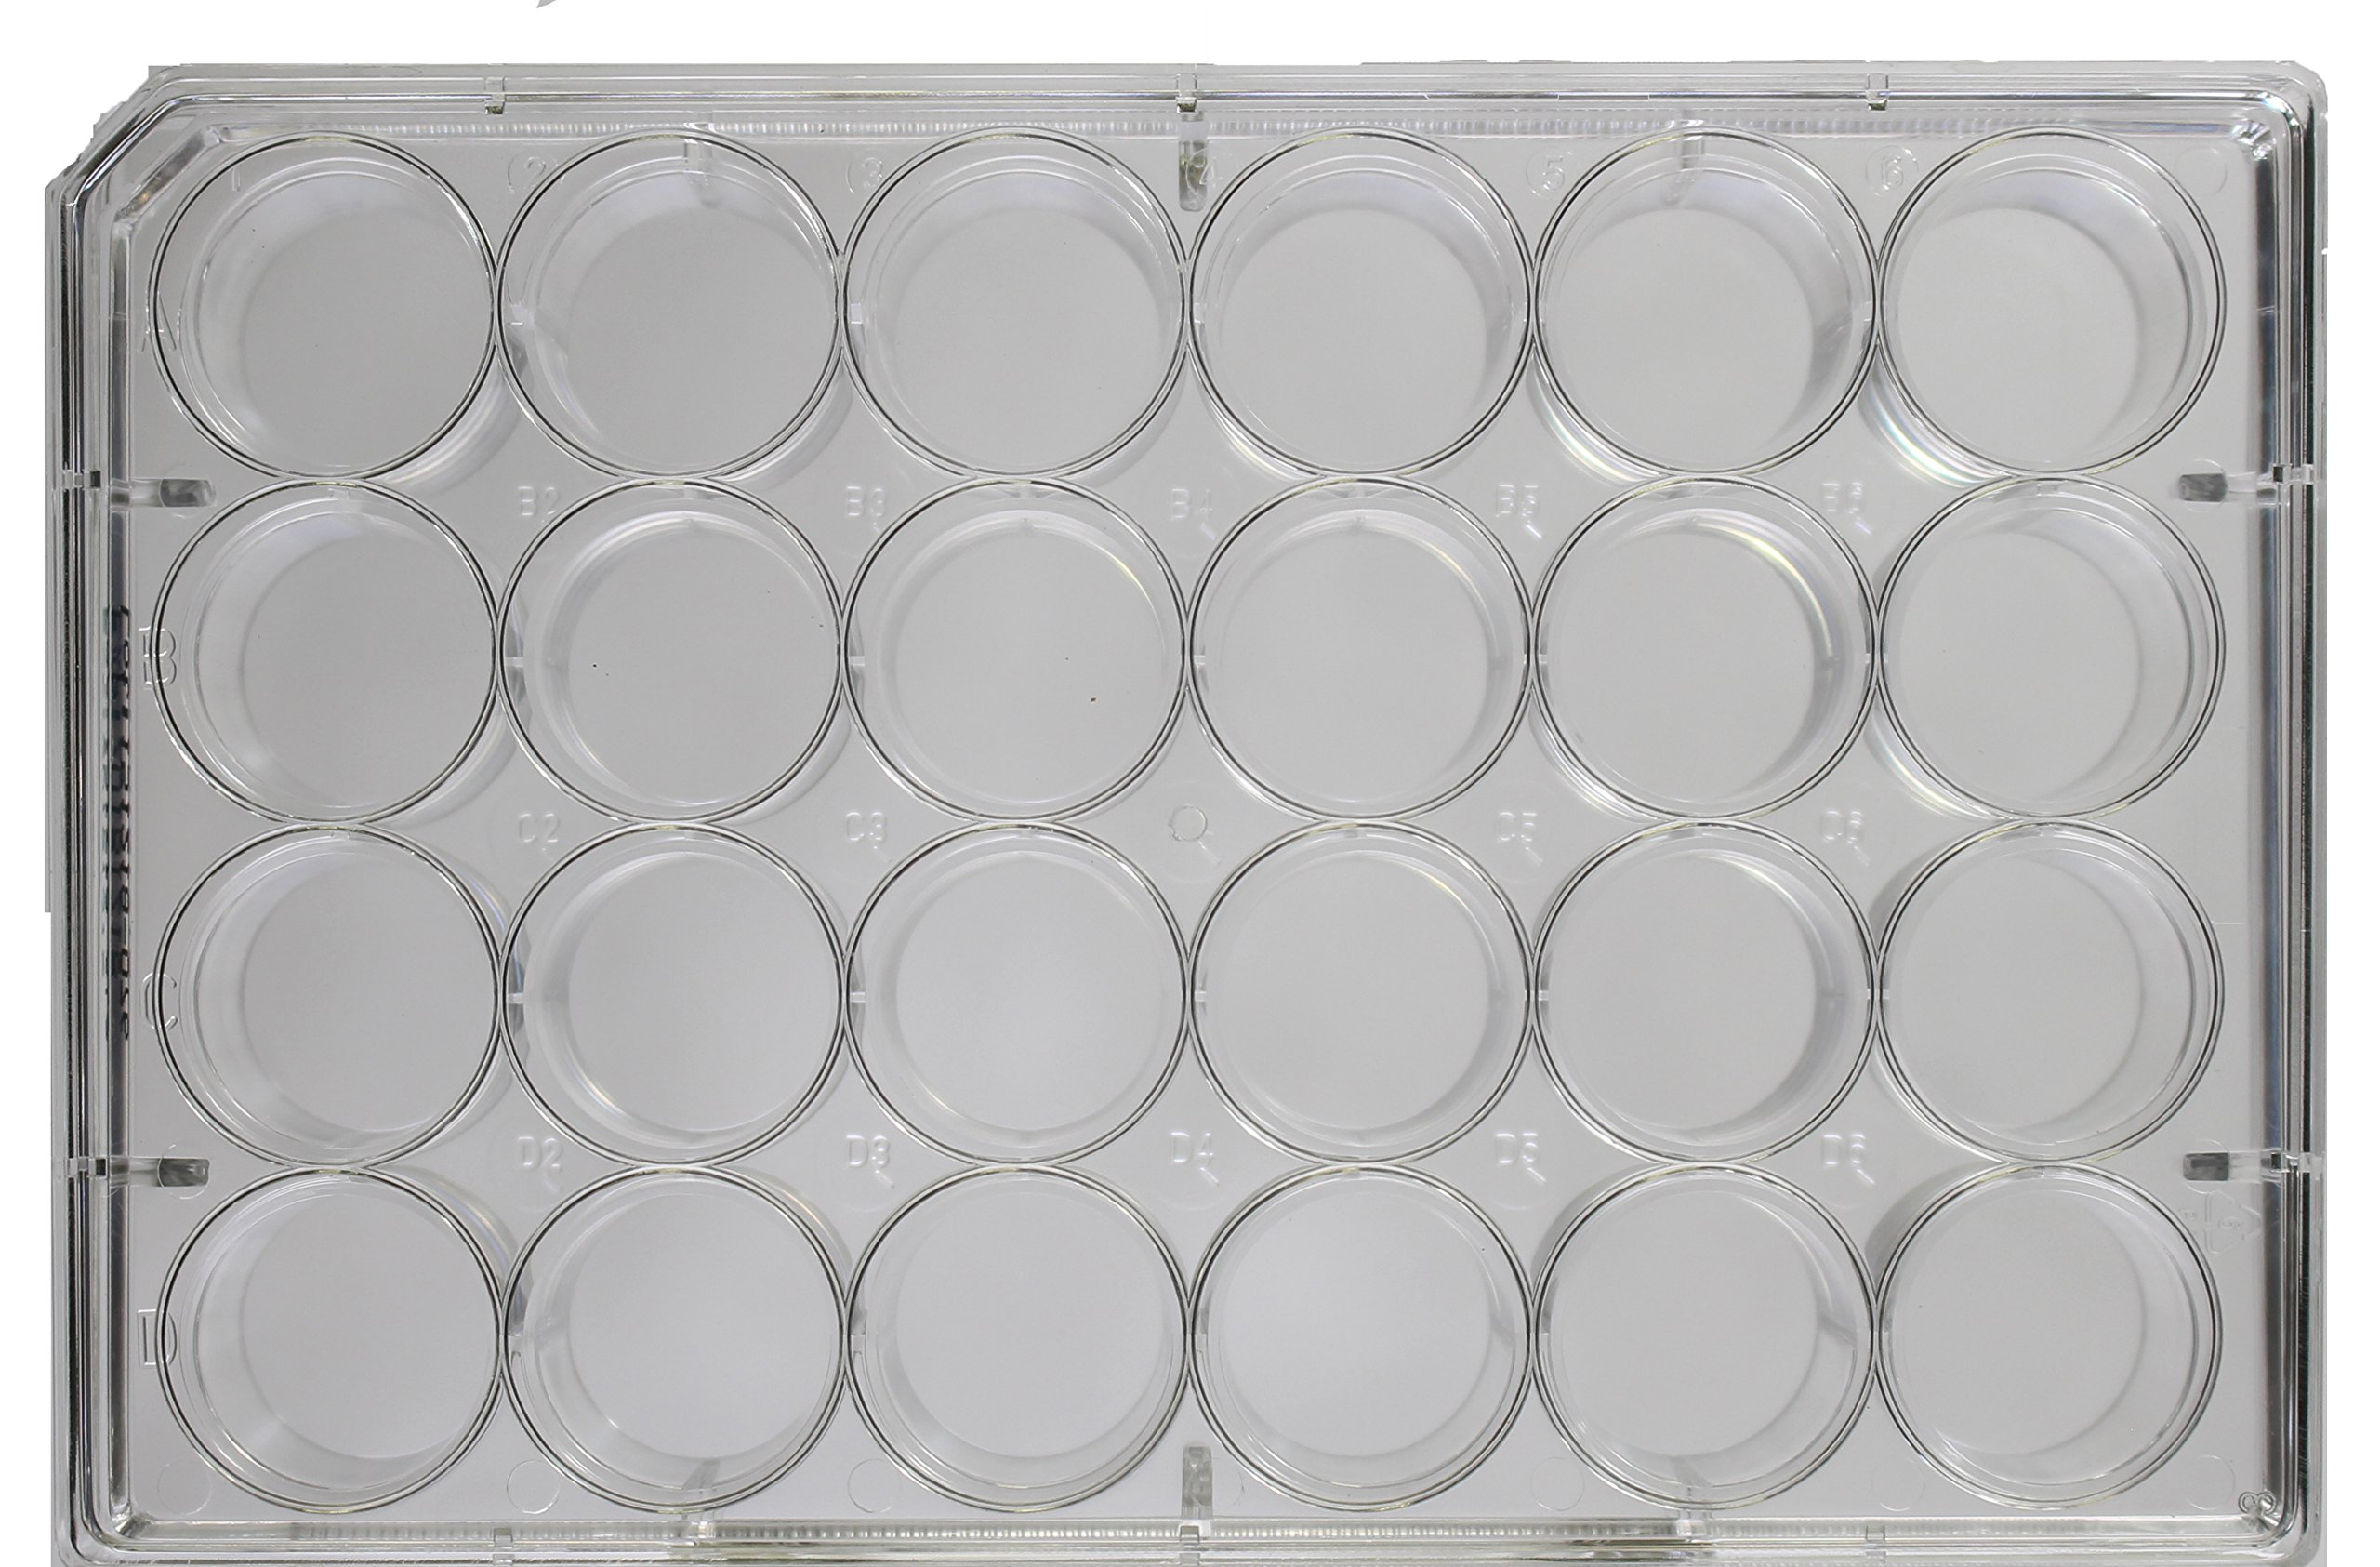 24 Well Cell and Tissue Culture Plates, Non Treated, Sterile, Case of 50